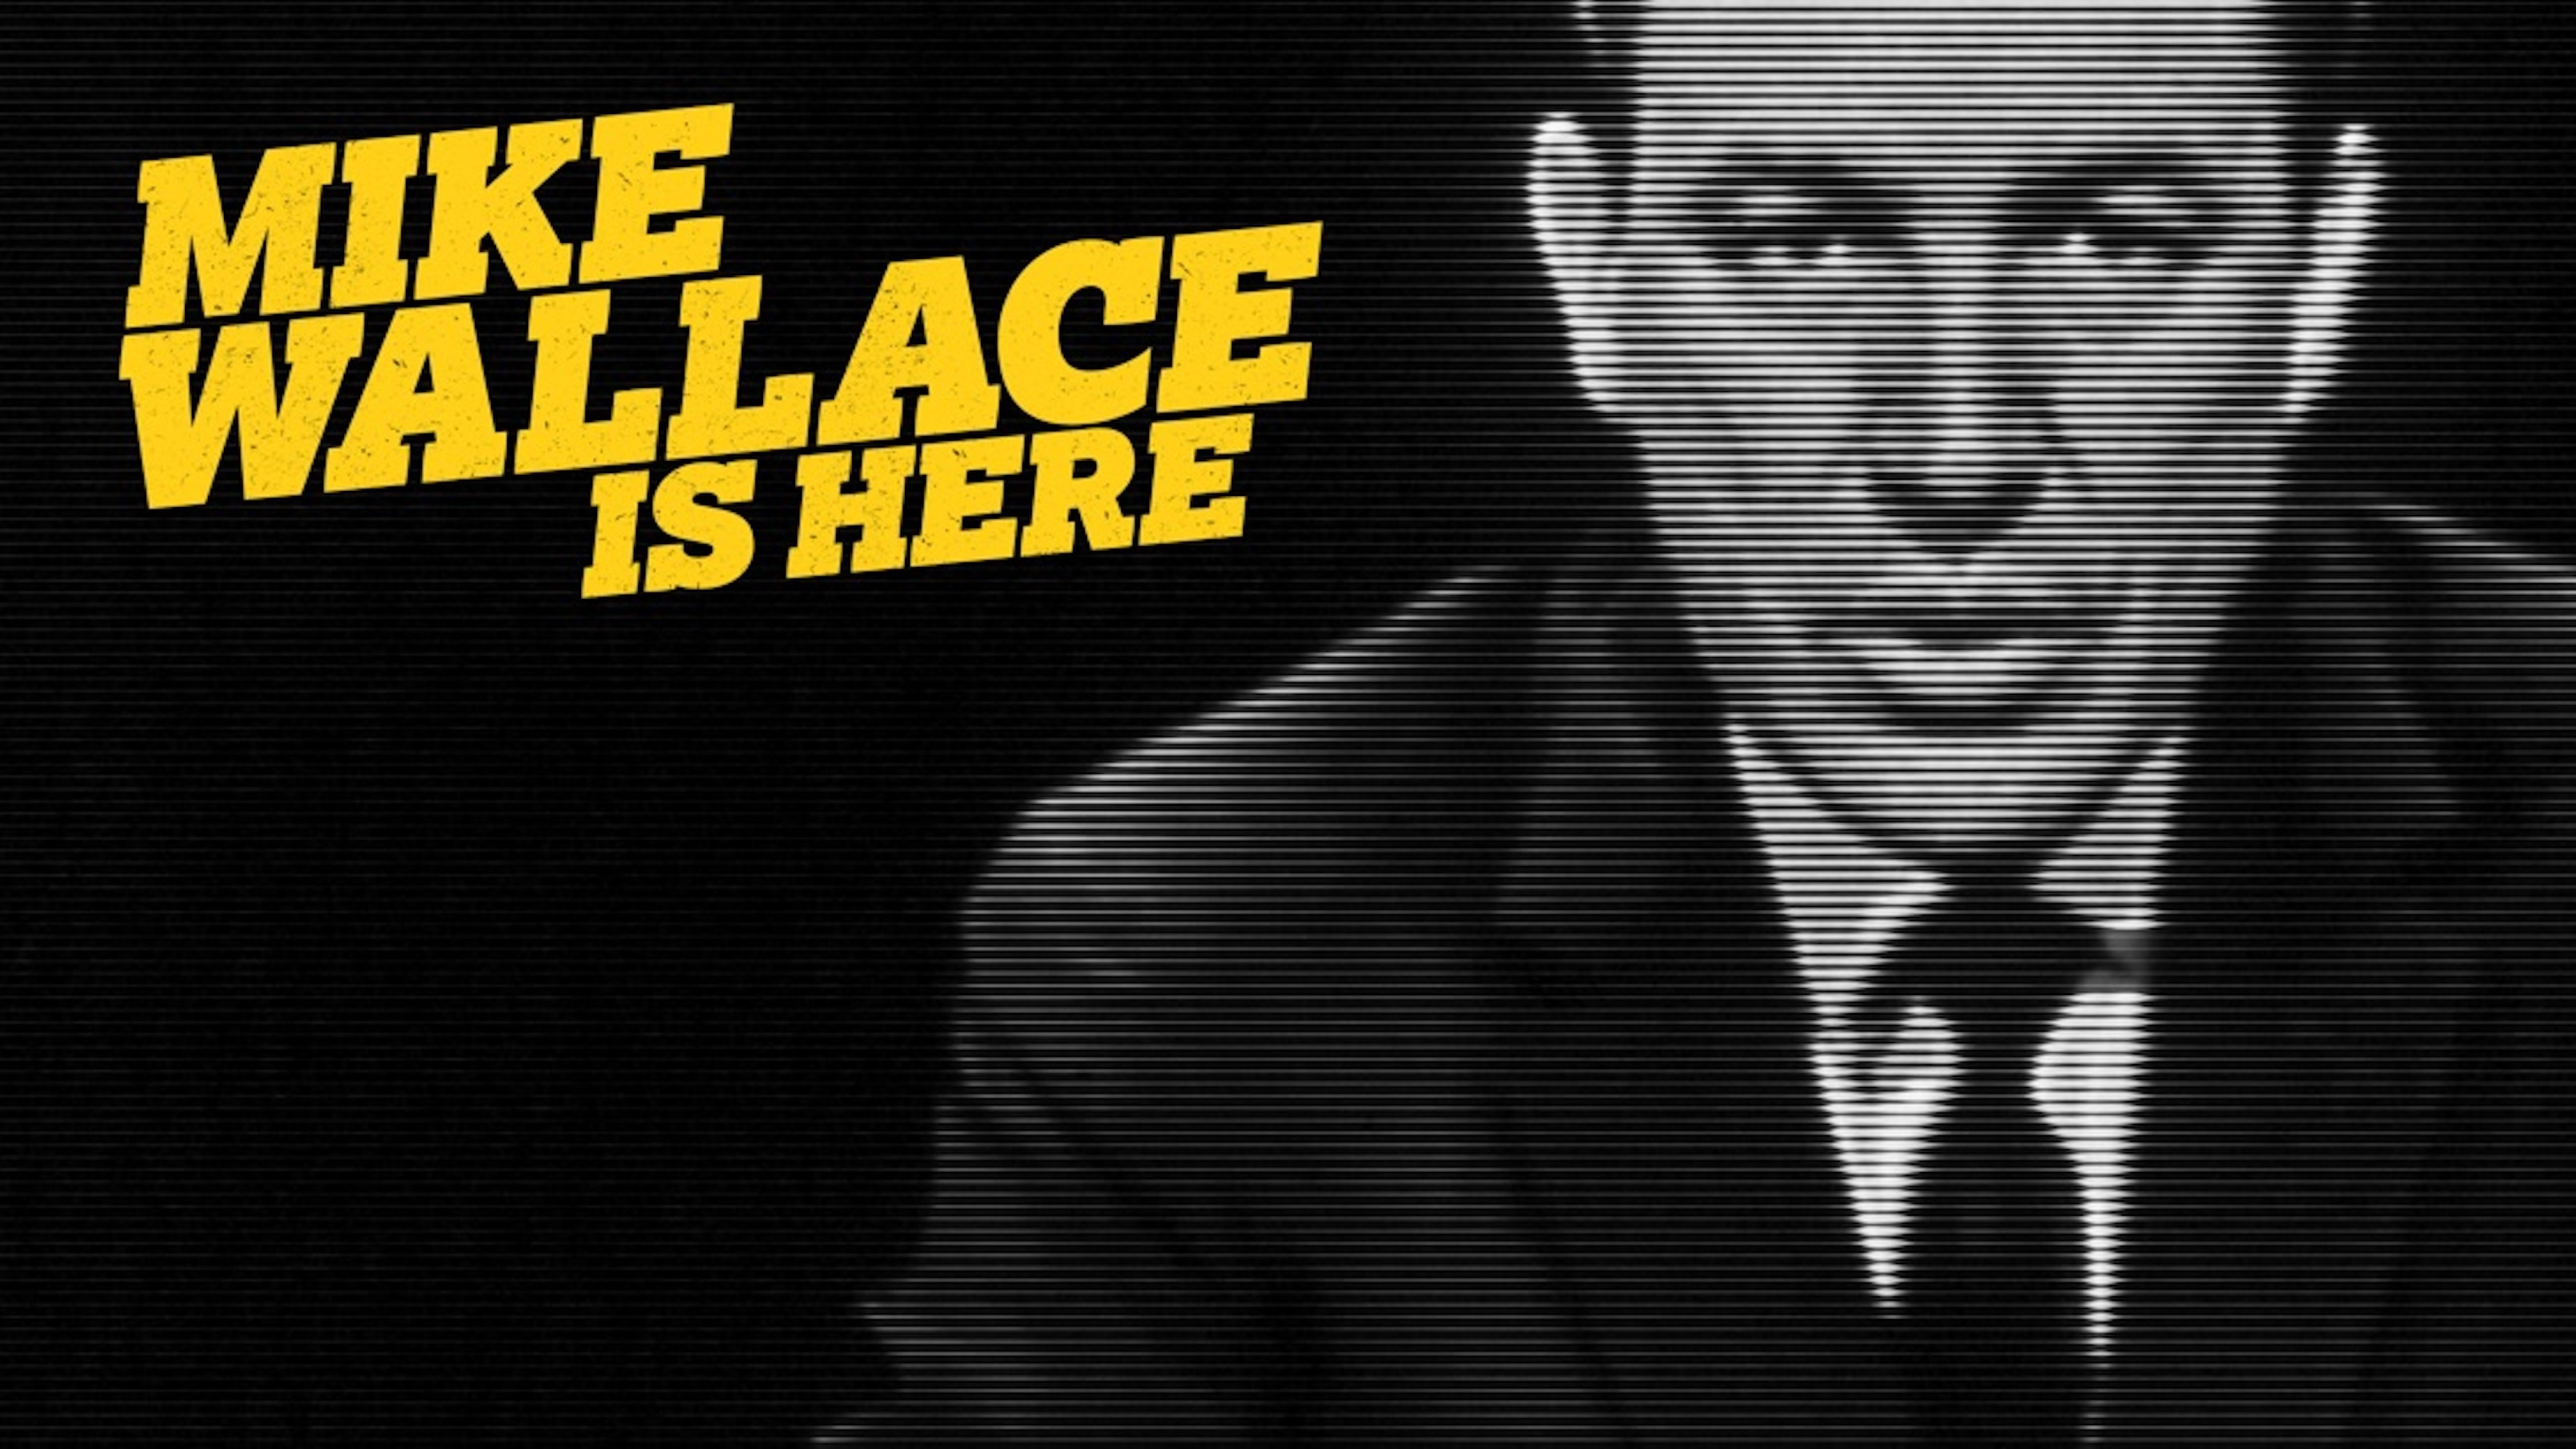 Mike Wallace Is Here - Rent